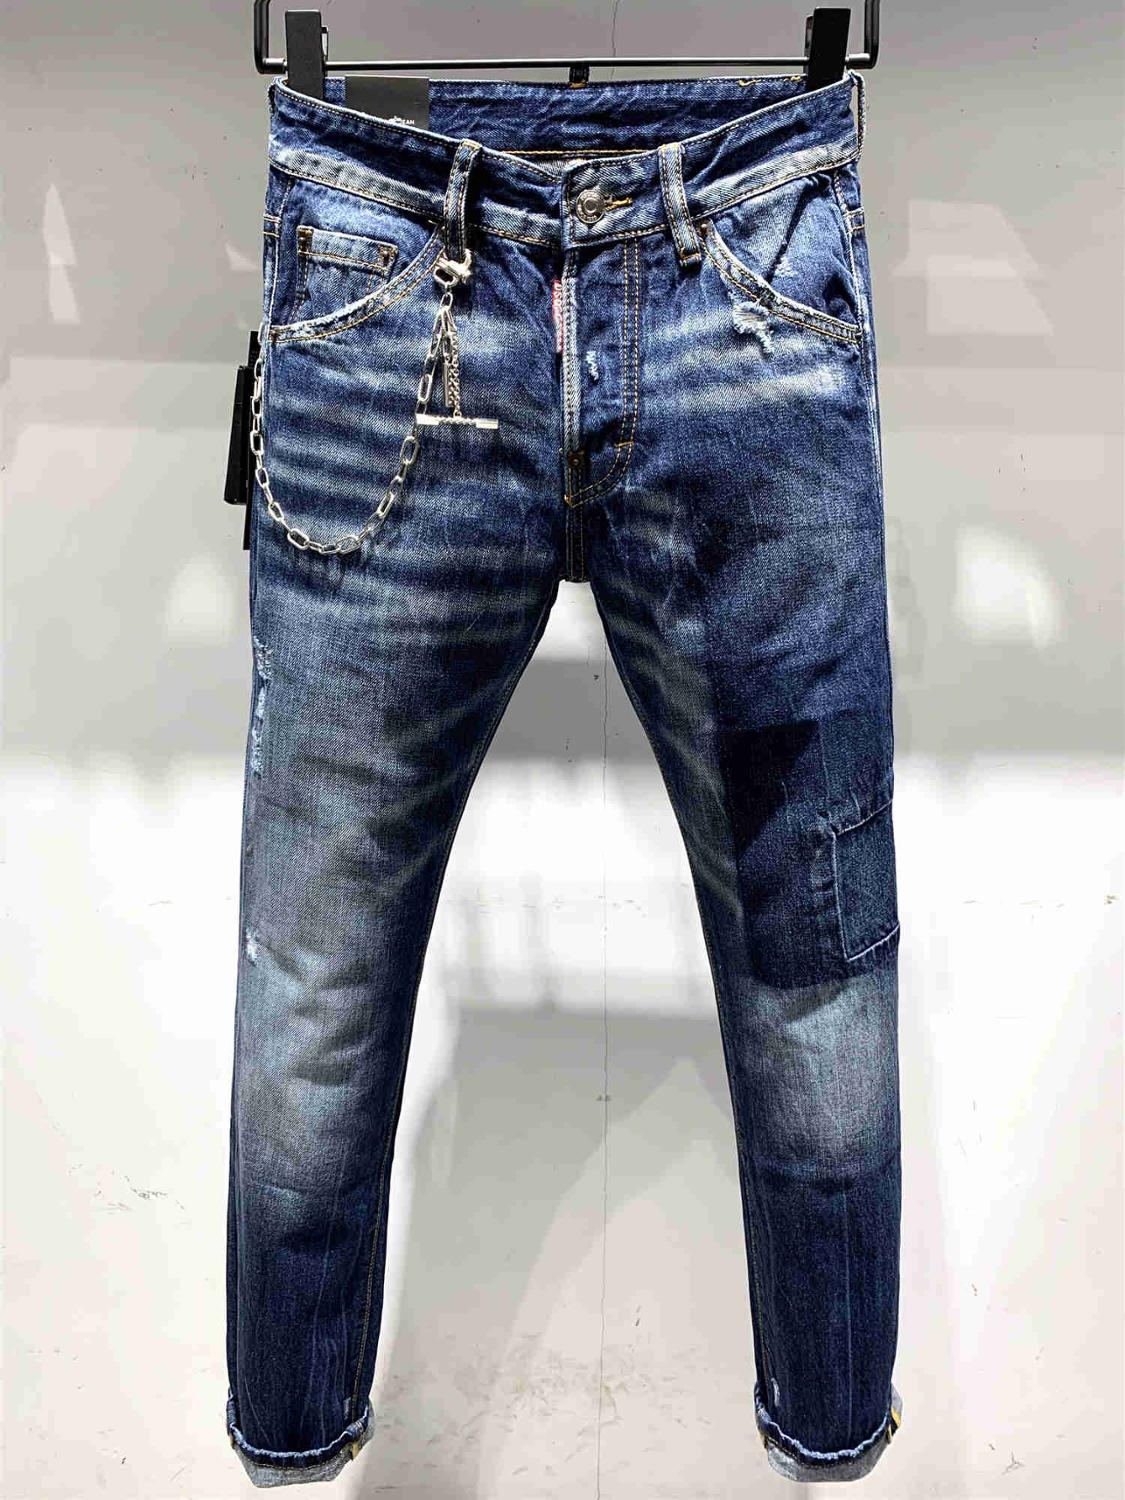 2019  Dsq Men's Jeans Printed With Hole Washed Casual Skinny Denim Jean For Man 100% Cotton Button Zipper